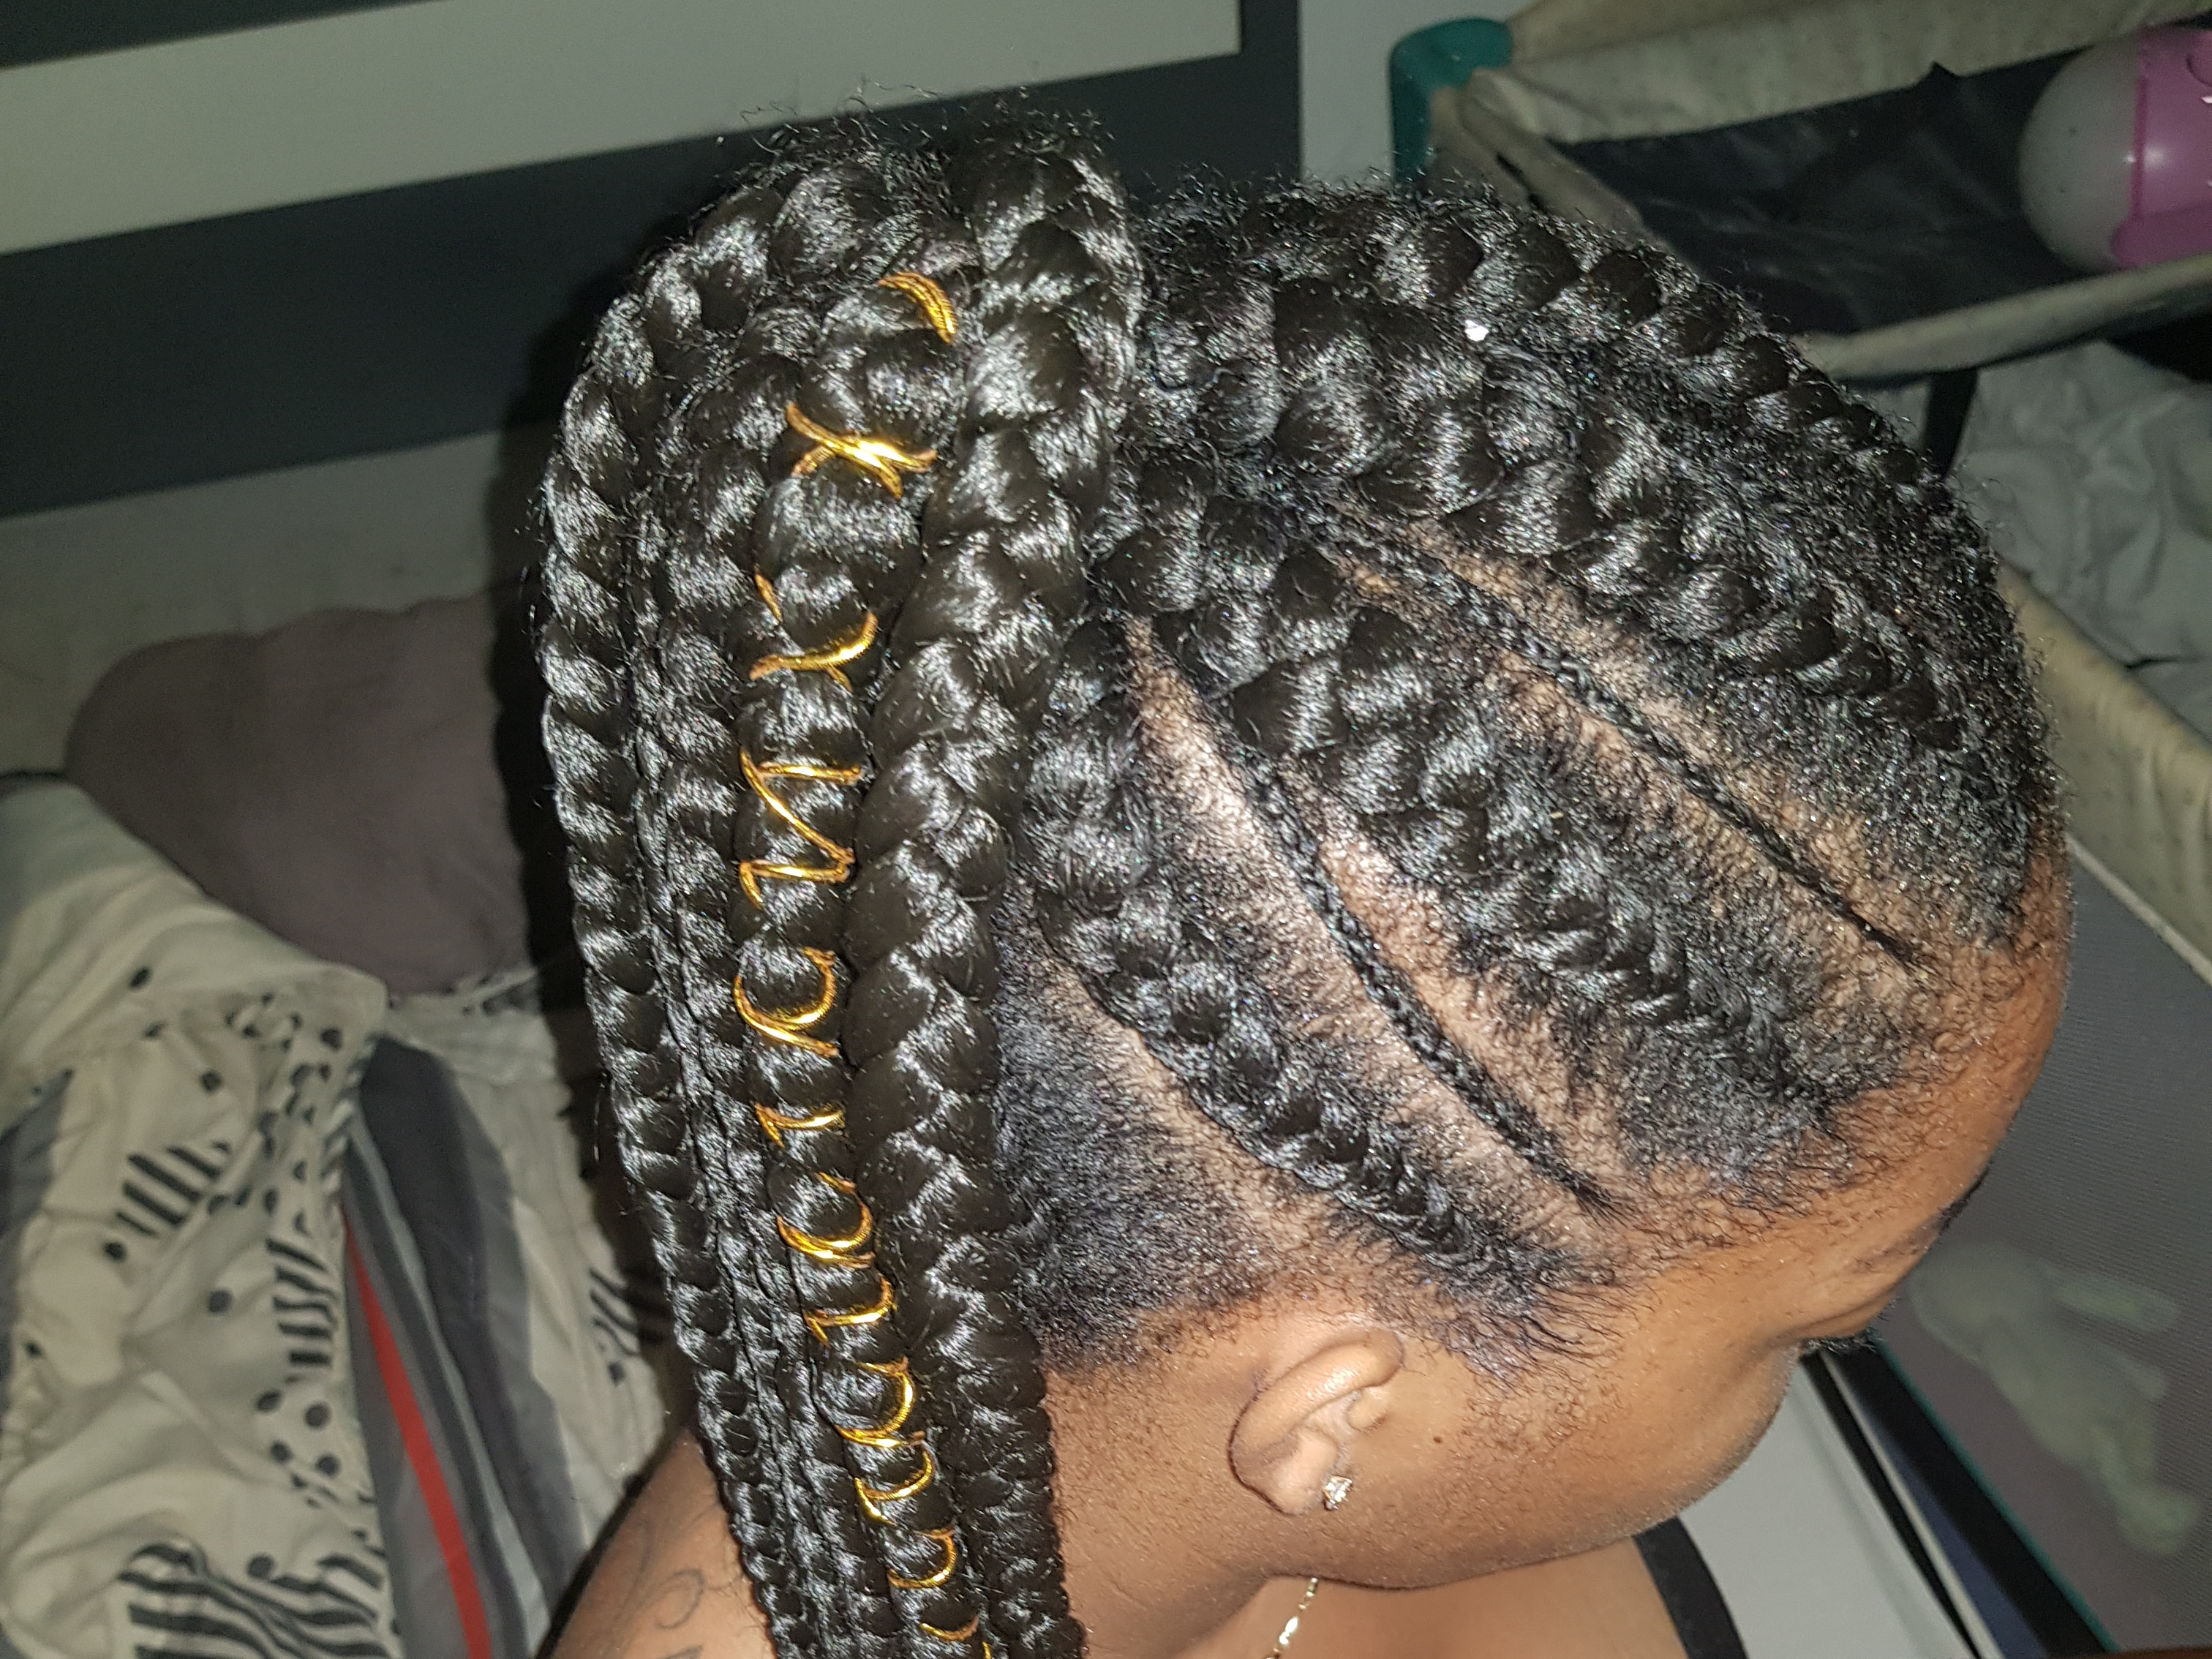 salon de coiffure afro tresse tresses box braids crochet braids vanilles tissages paris 75 77 78 91 92 93 94 95 GKPKDEHM